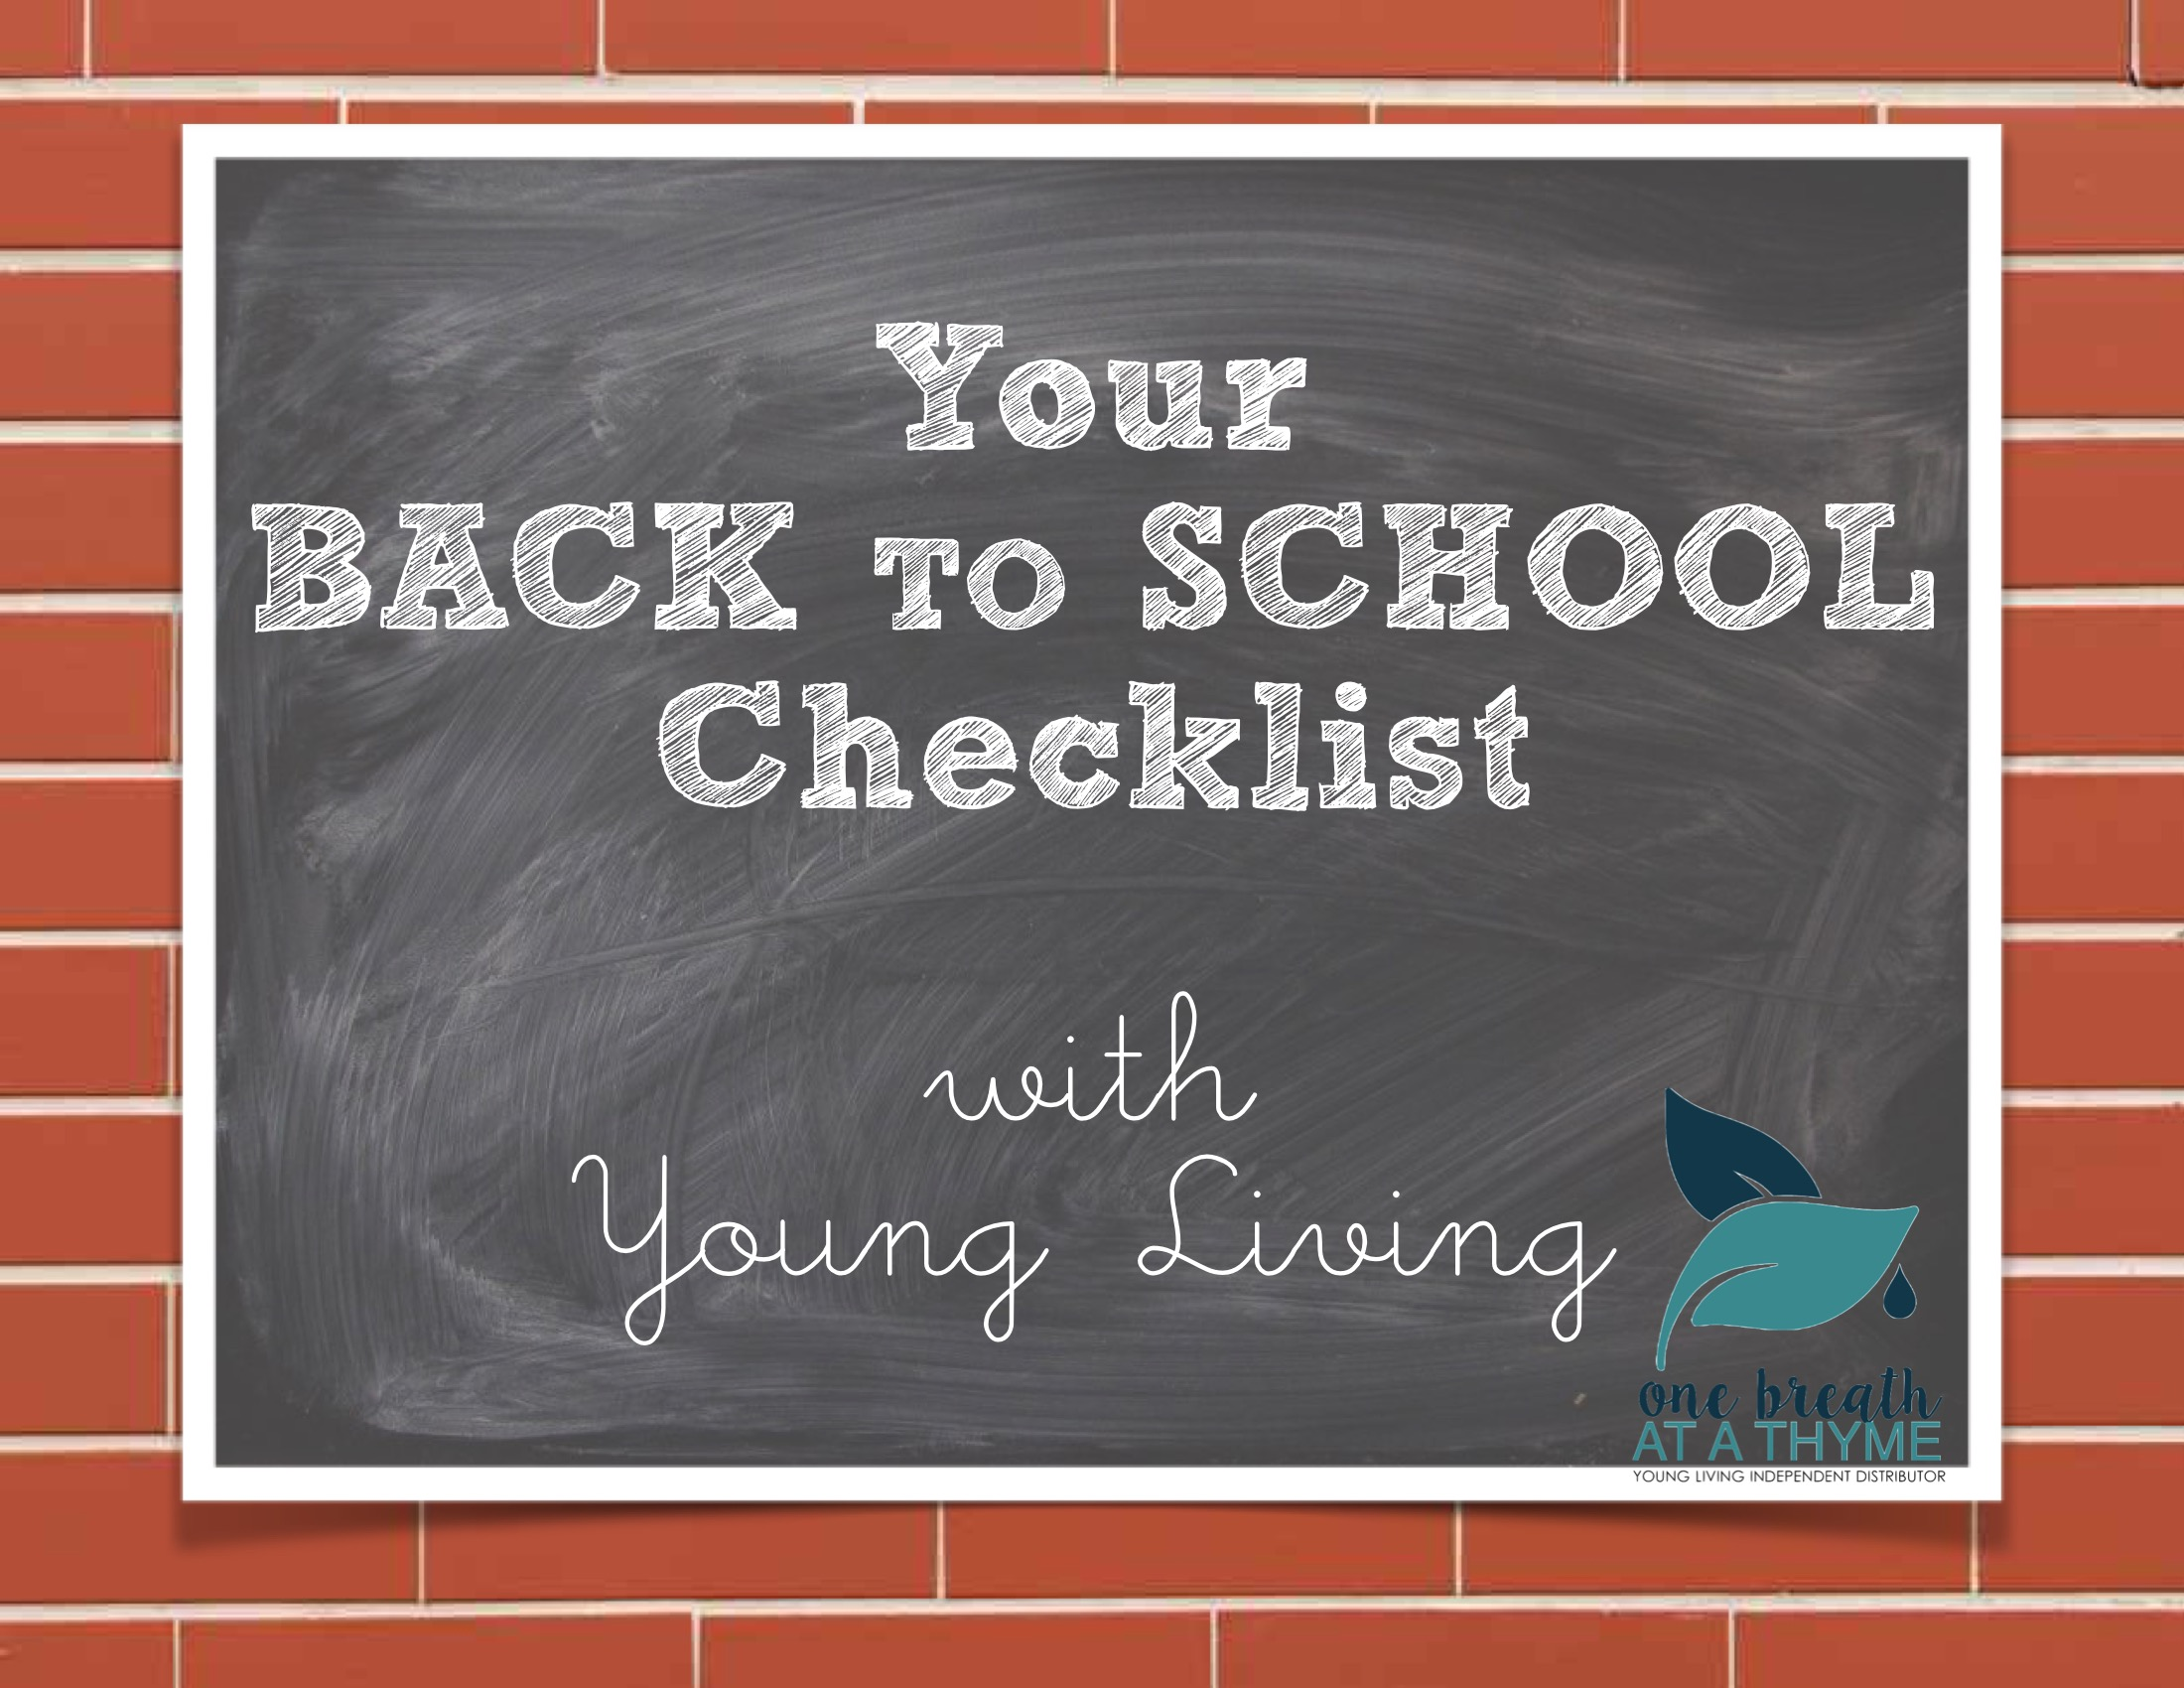 000-back-to-school-checklist-page-1